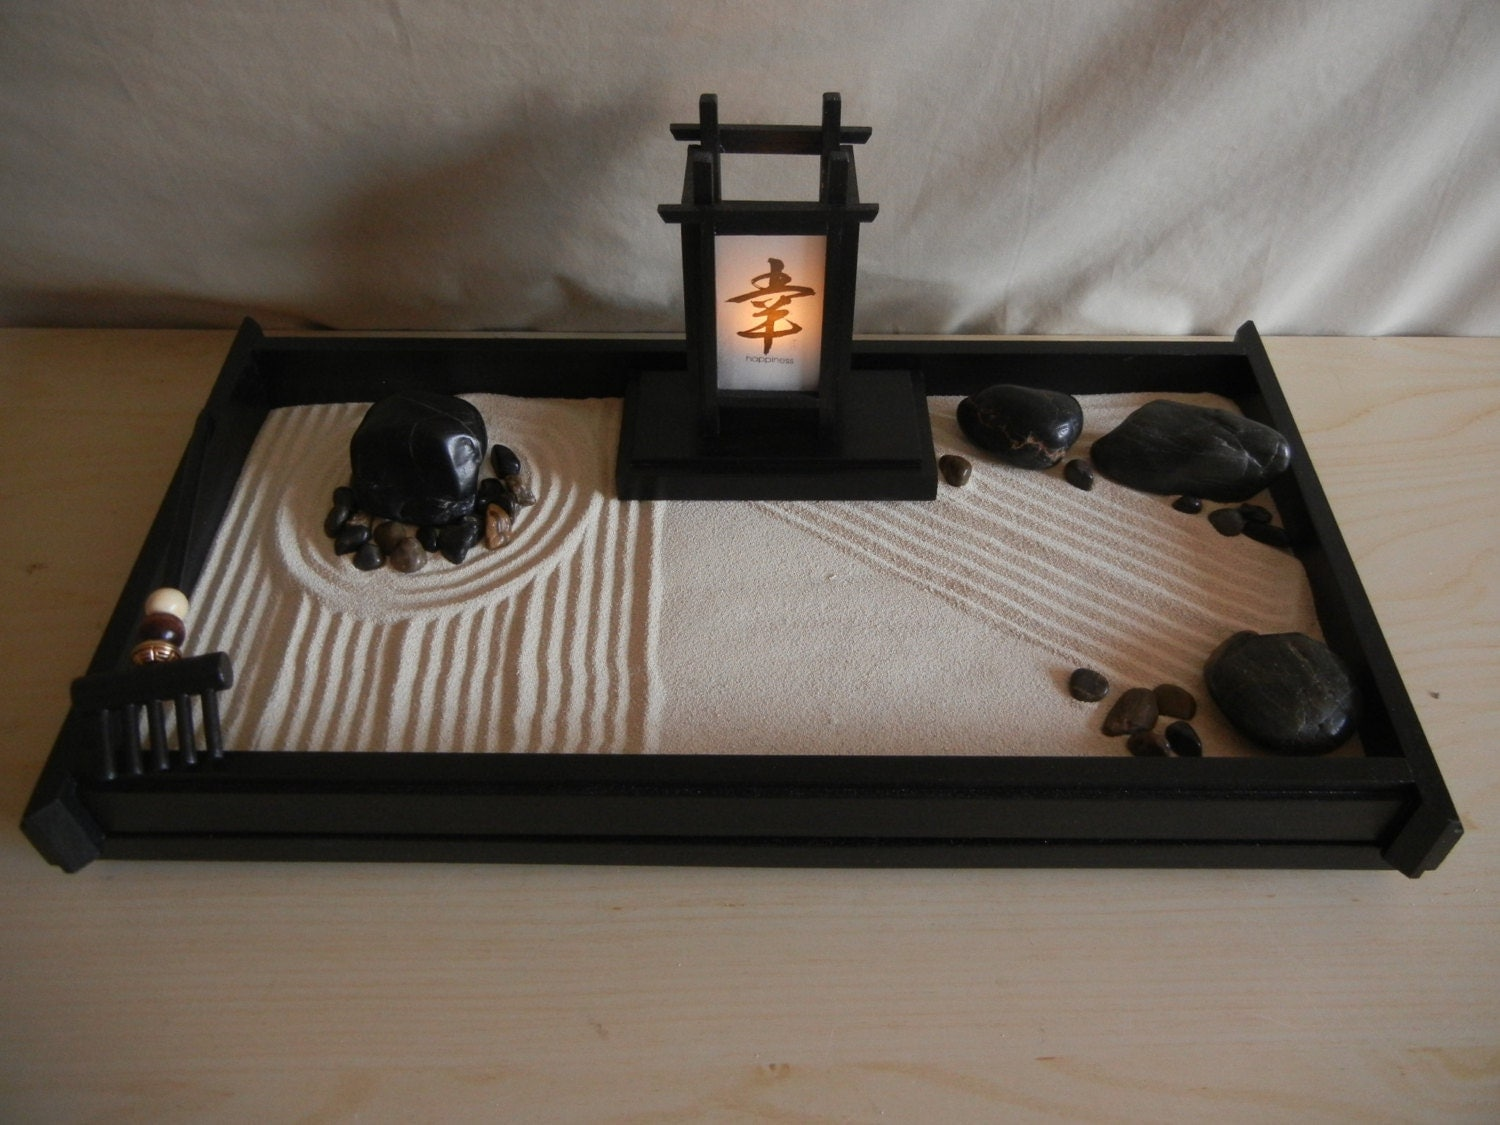 L 05 large desk or table top zen garden with japanese lantern for Table zen garden